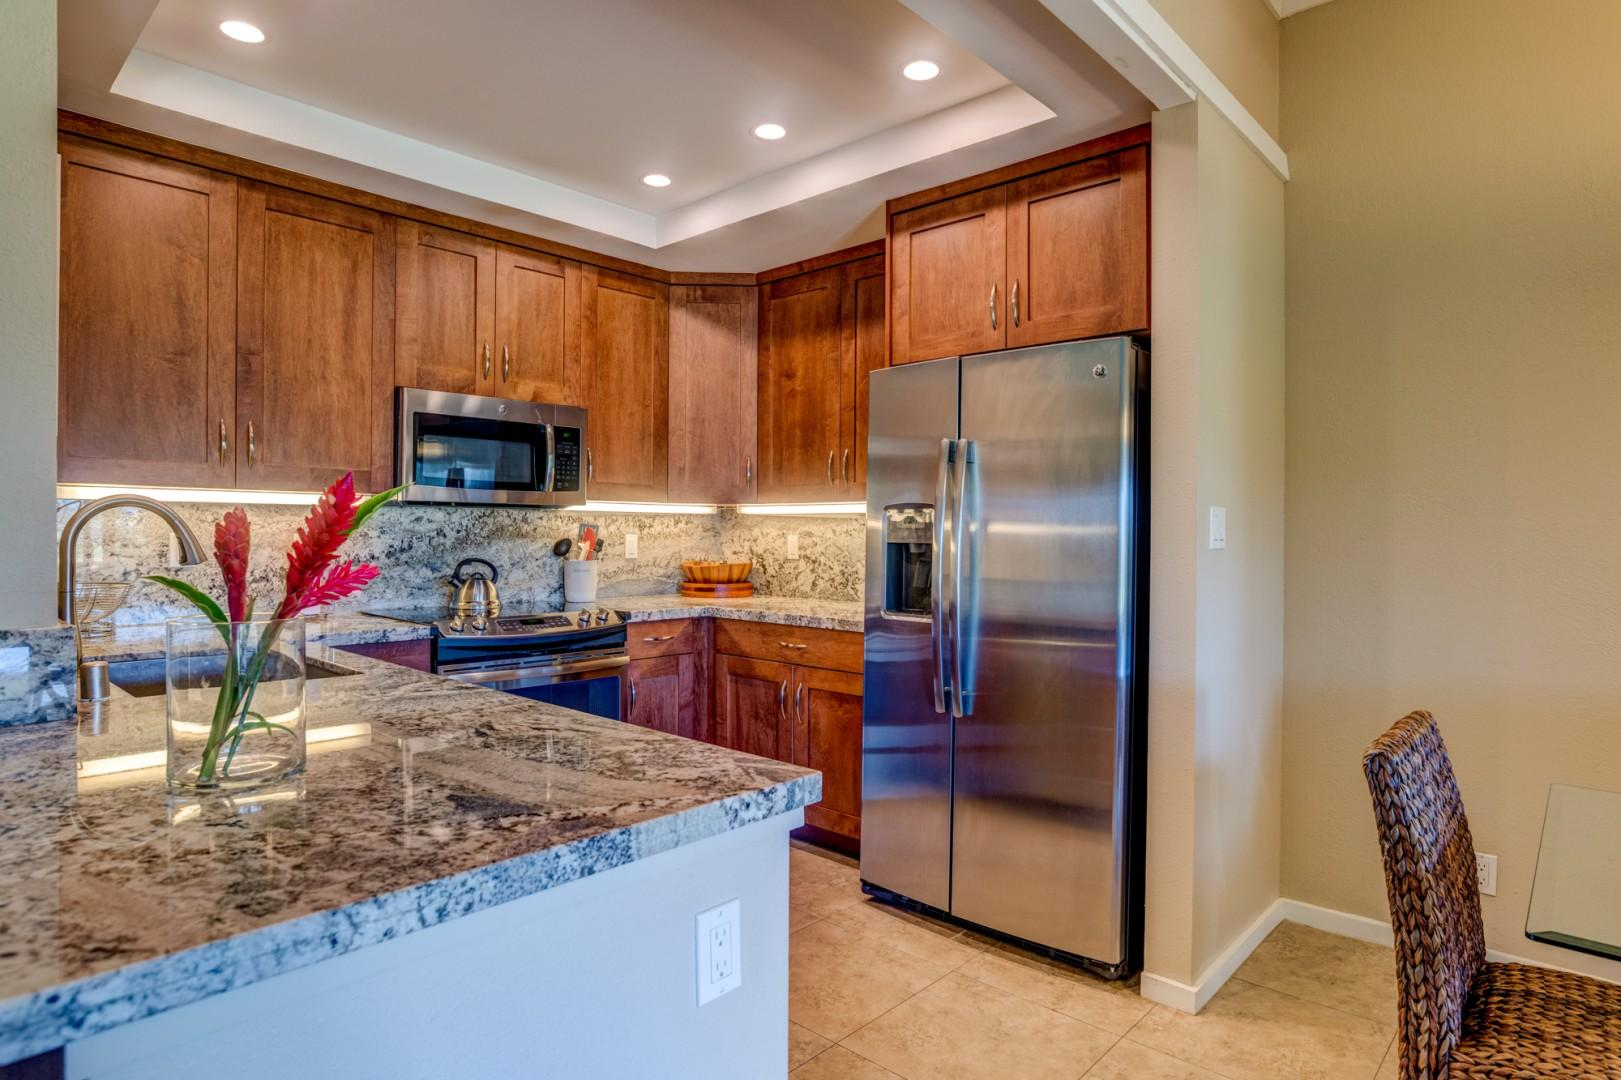 Plenty of space for all your kitchen needs